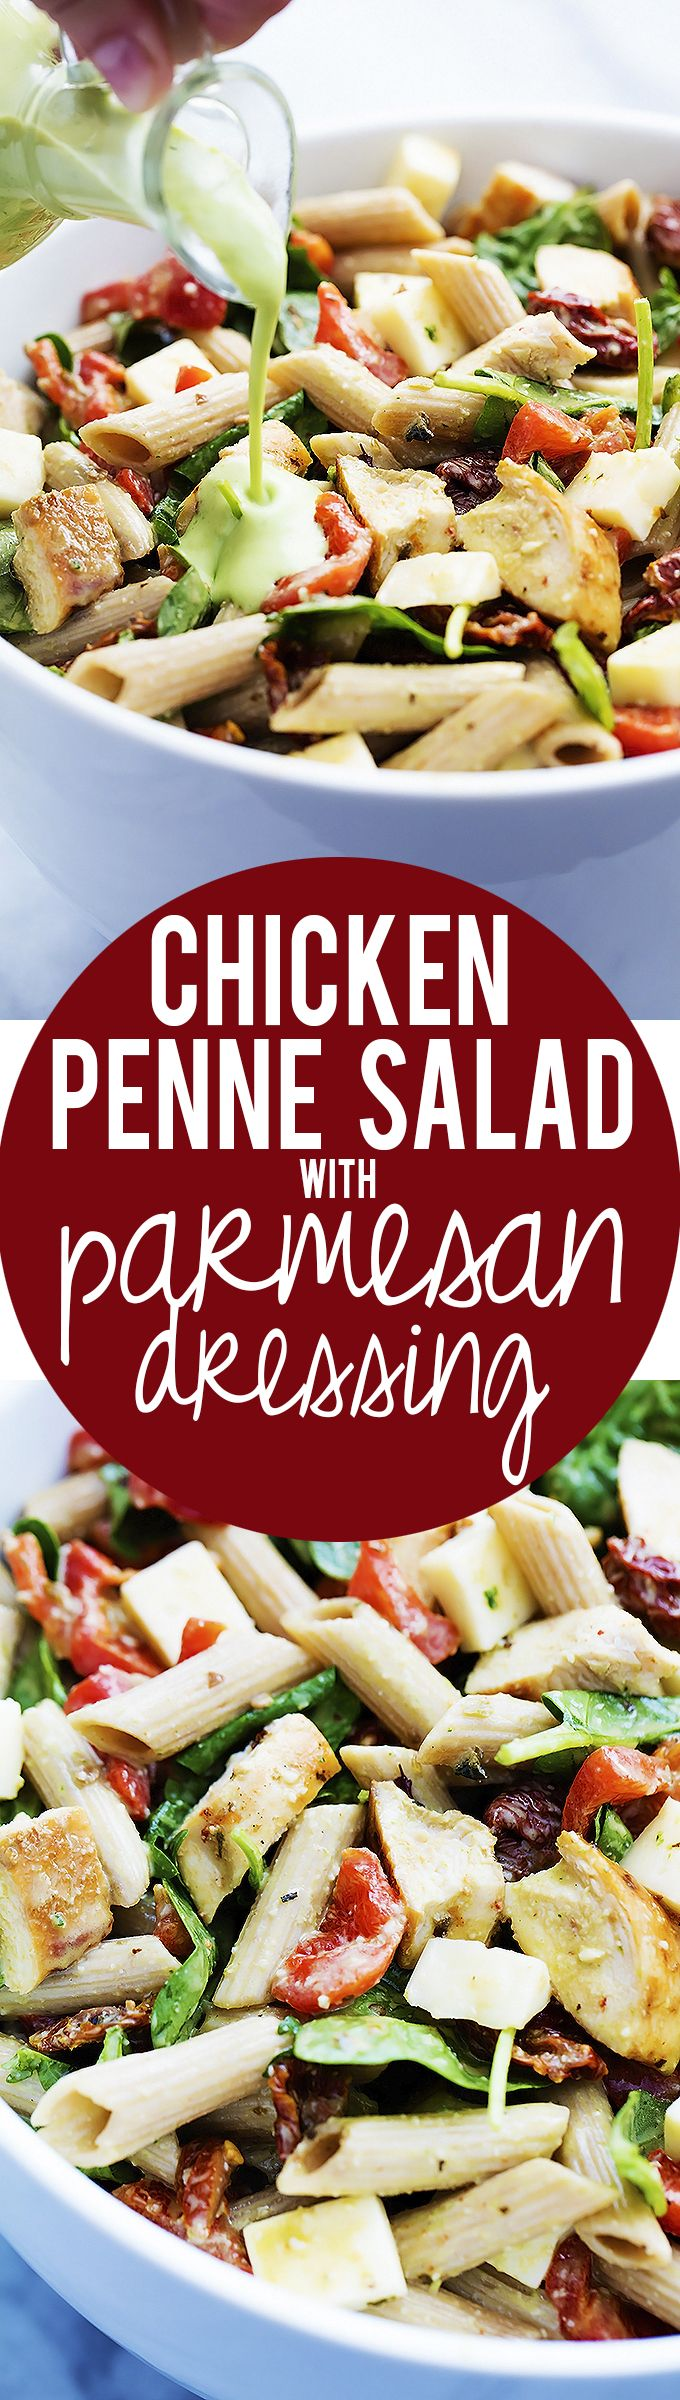 Chicken Penne Salad with Creamy Parmesan Dressing